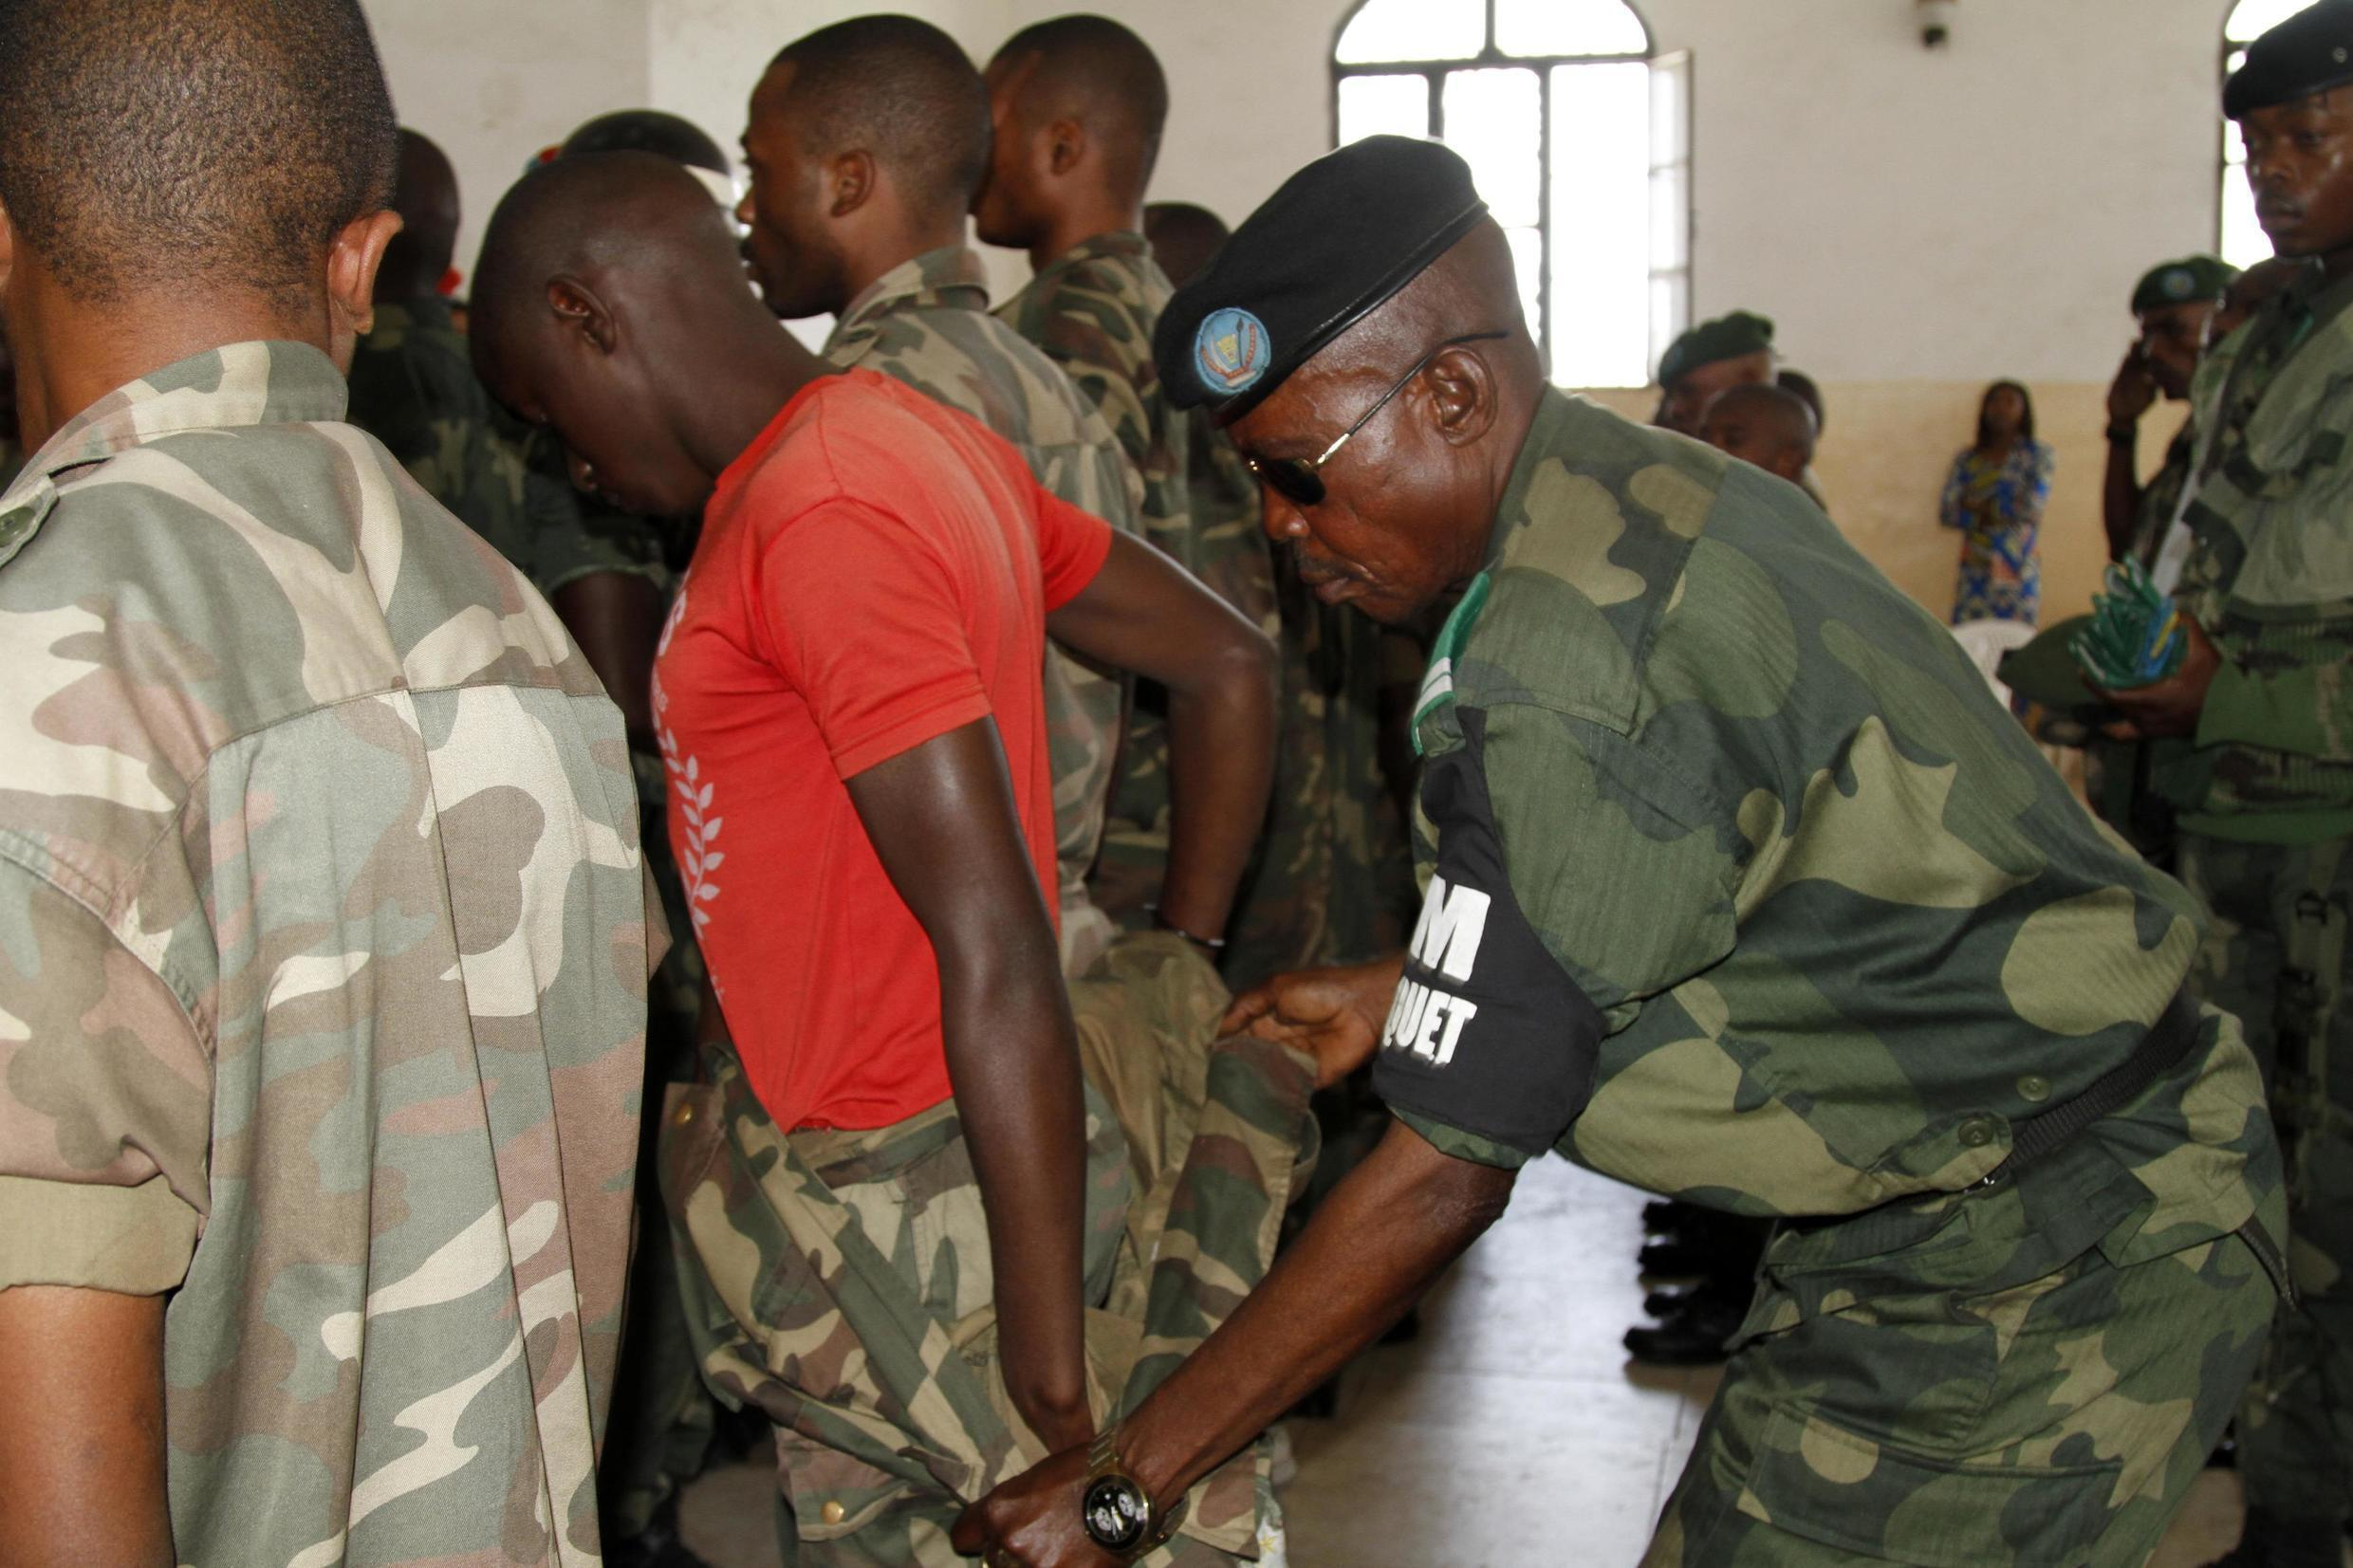 Congolese soldier stripped of his rank and uniform after the mass trial of 39 soldiers,  Goma, DRC, 5 may 2014.